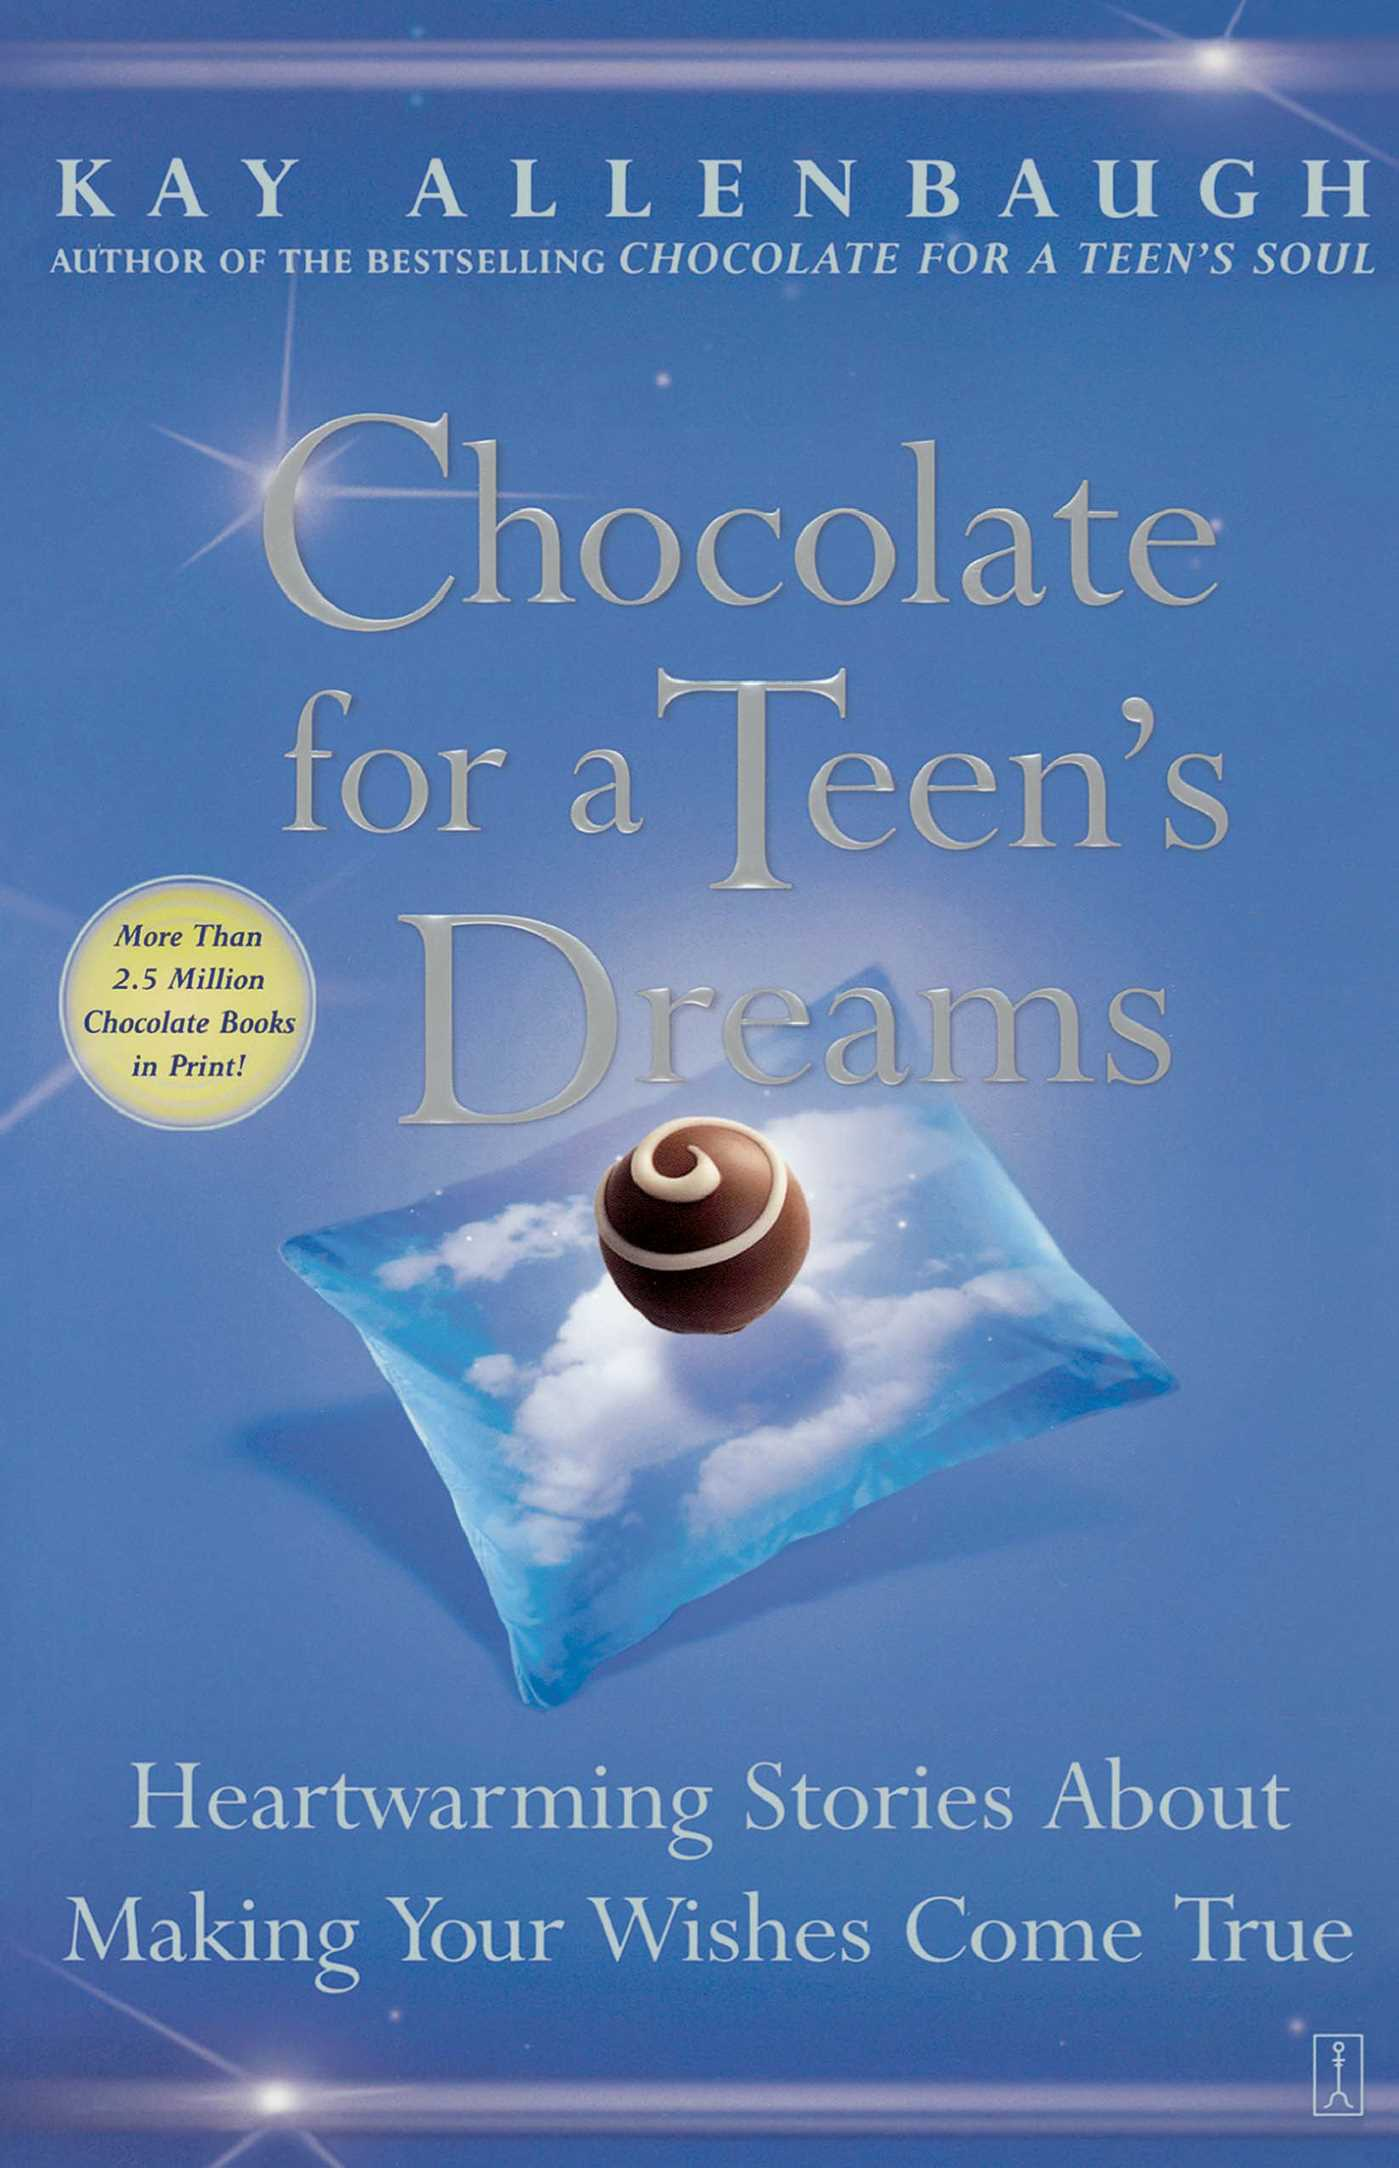 Chocolate for a teens dreams 9780743237031 hr